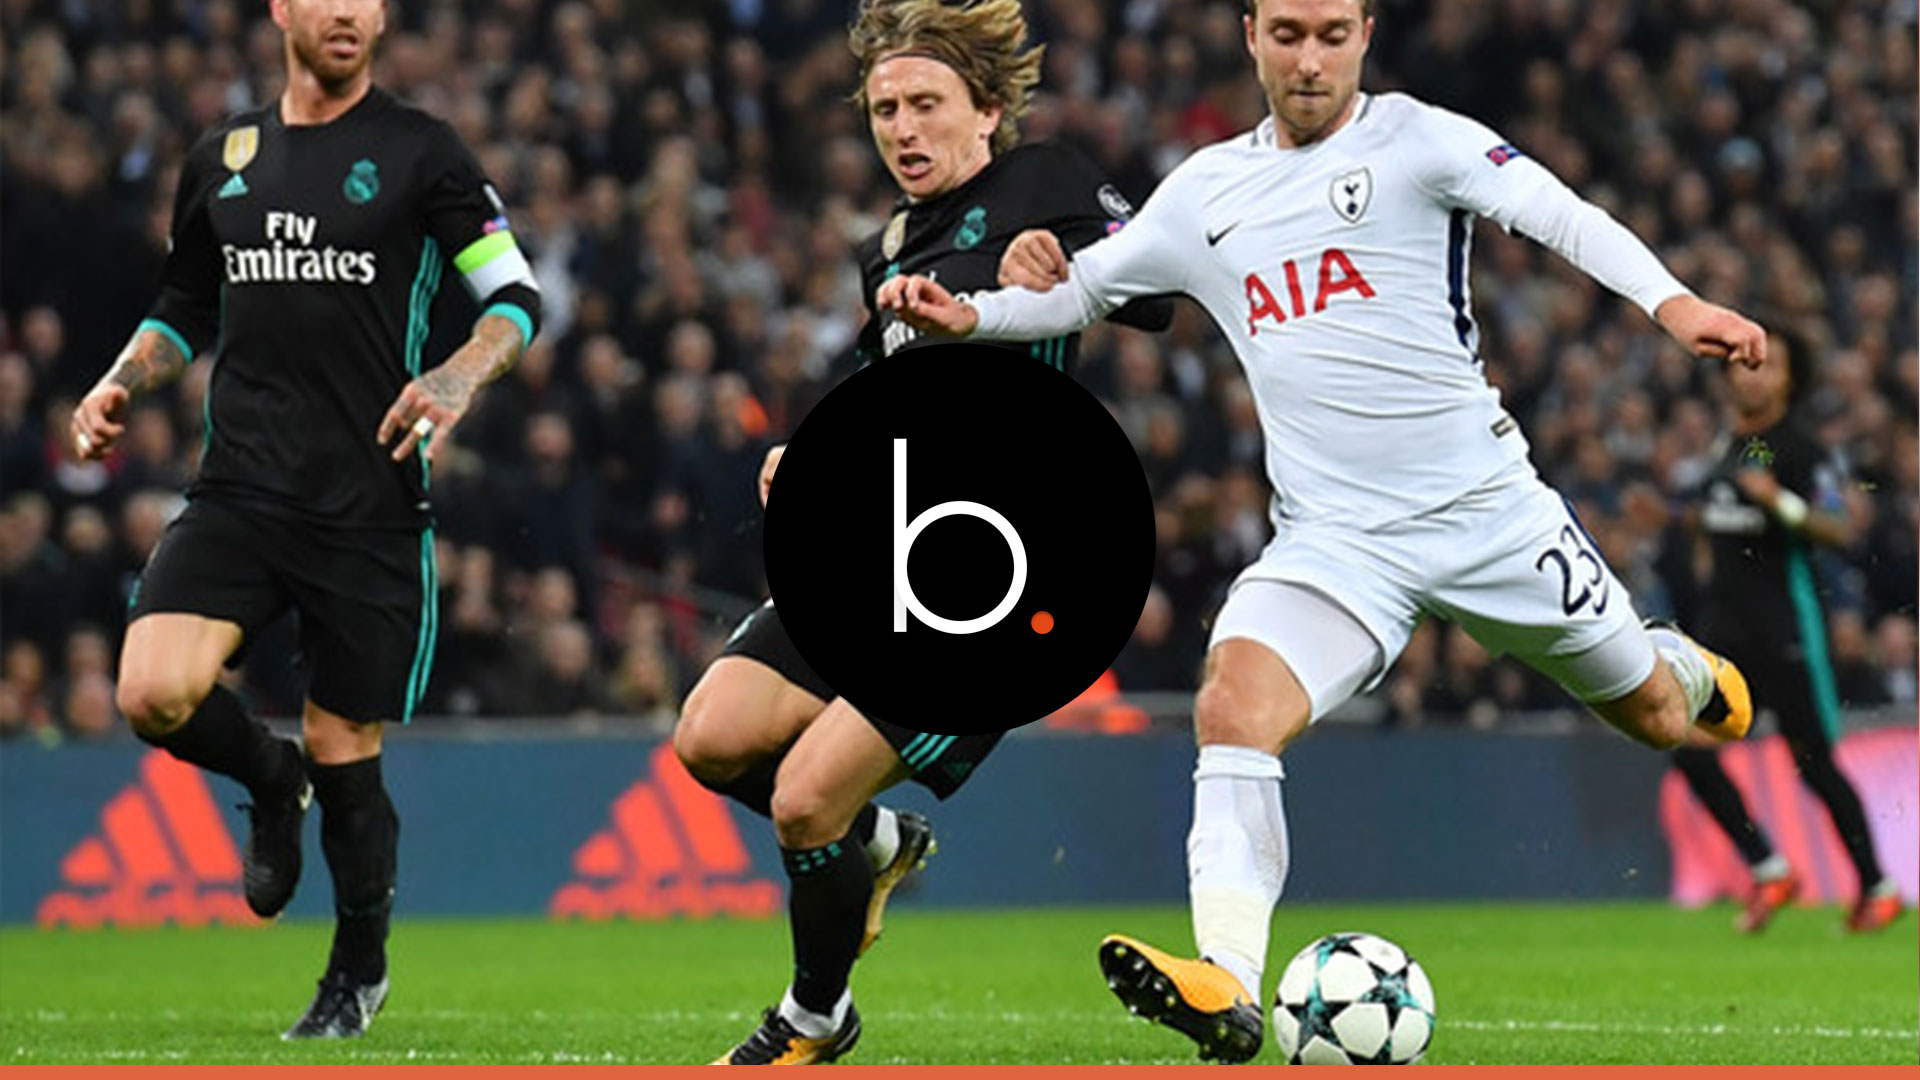 Tottenham Hotspur outperformed Real Madrid with a 3-1 win